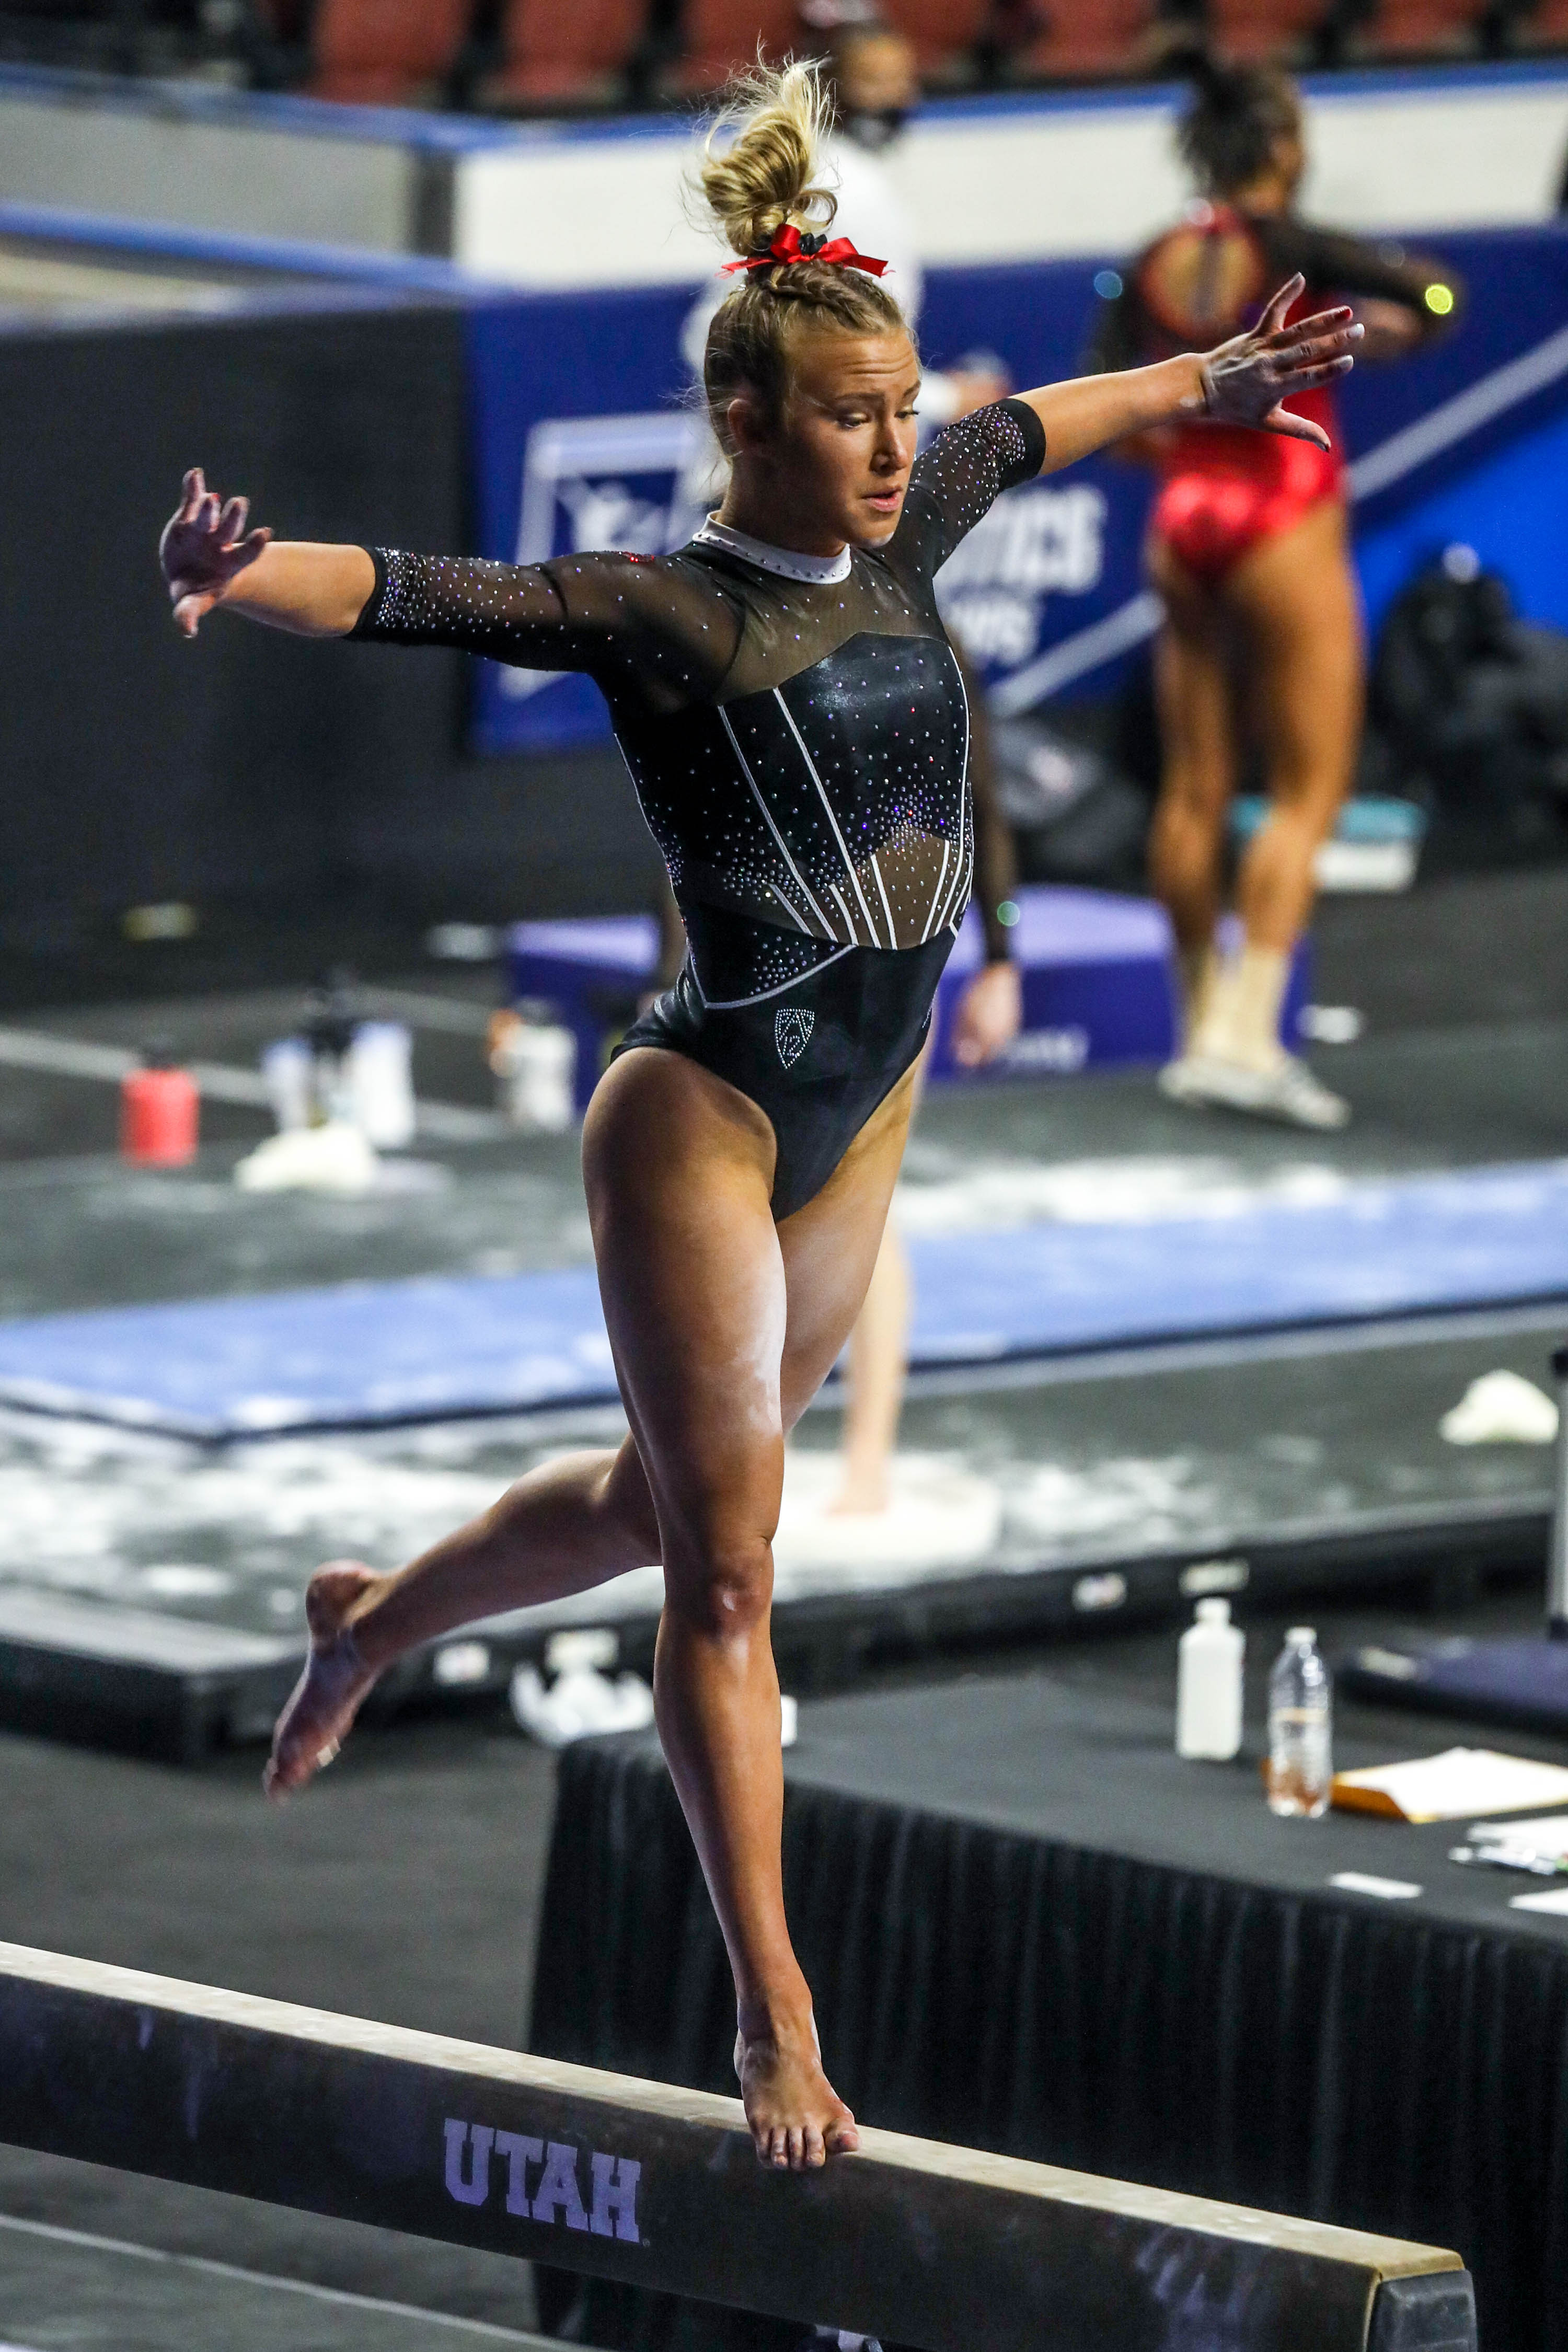 Utah Utes gymnast Abby Paulson competes on the beam during the NCAA regional second round at the Maverik Center on Friday, April 2, 2021.